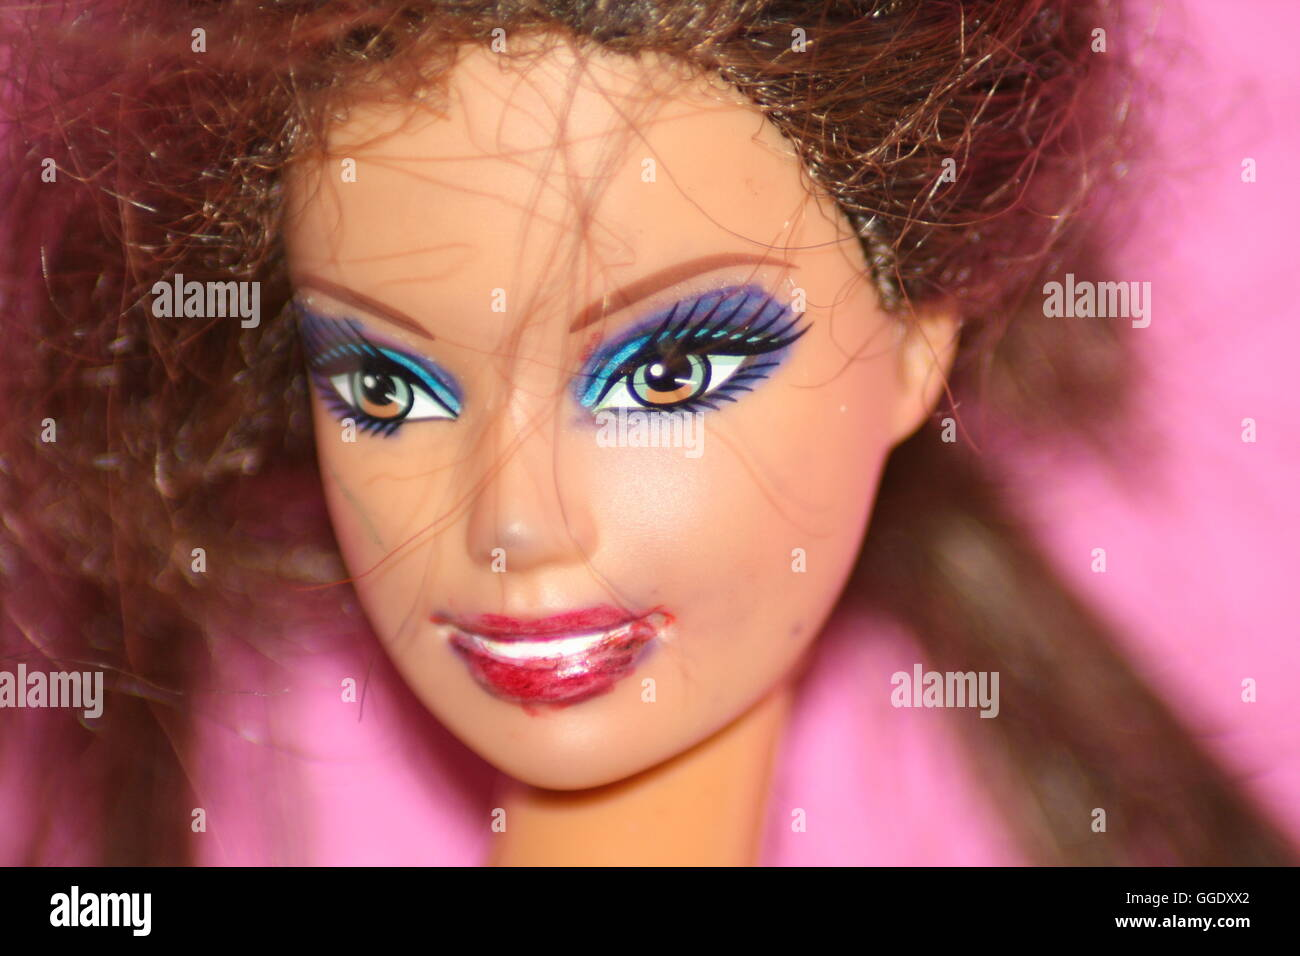 6c09b547a0c Doll With Makeup On Photos & Doll With Makeup On Images - Alamy